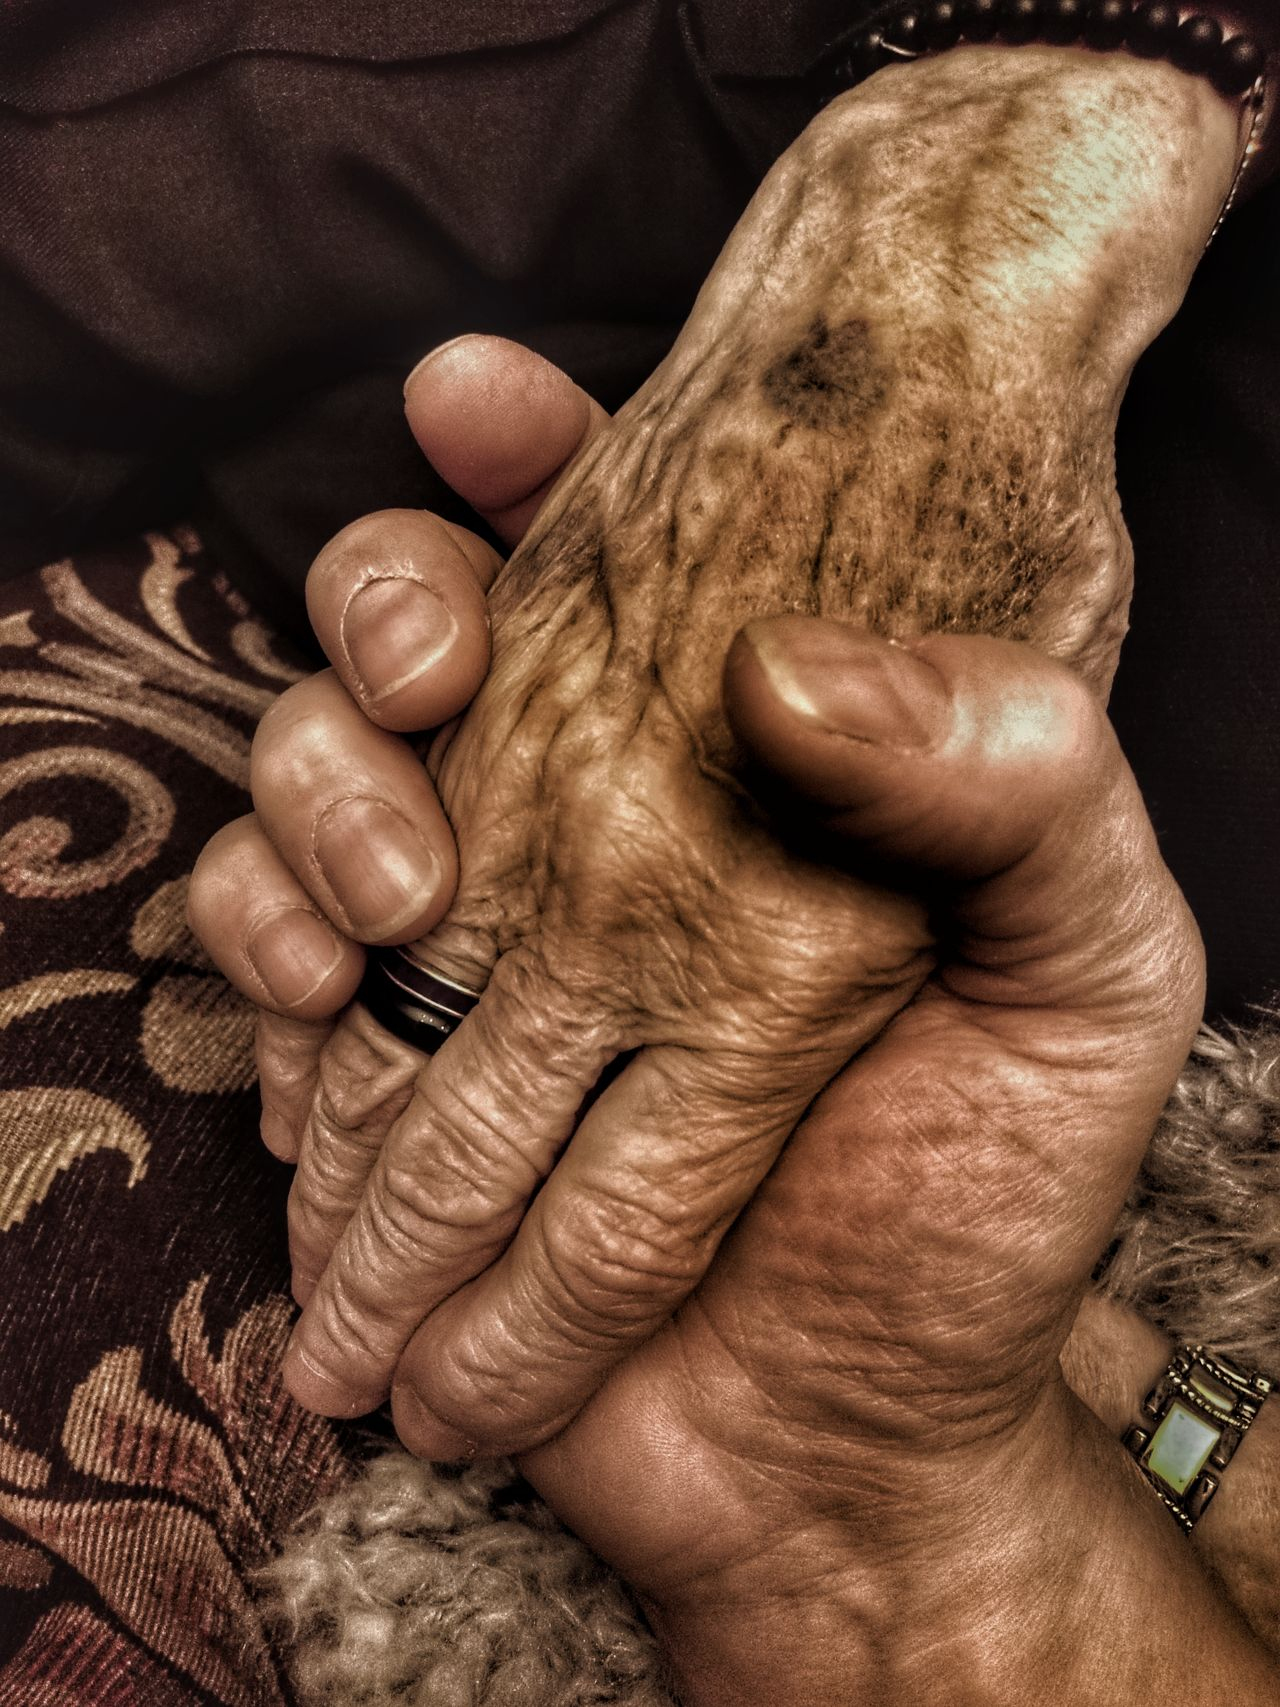 Human Hand Human Body Part Human Finger Togetherness Real People Aged People Adult Olderbeauty My Mothers Hand My Mum ♥  Old But Awesome Age Ageless Fragility Frailty Time To Reflect My Hand  My Mother And I Time Is Precious! Popular Photos For Friends That Connect  82yearsold